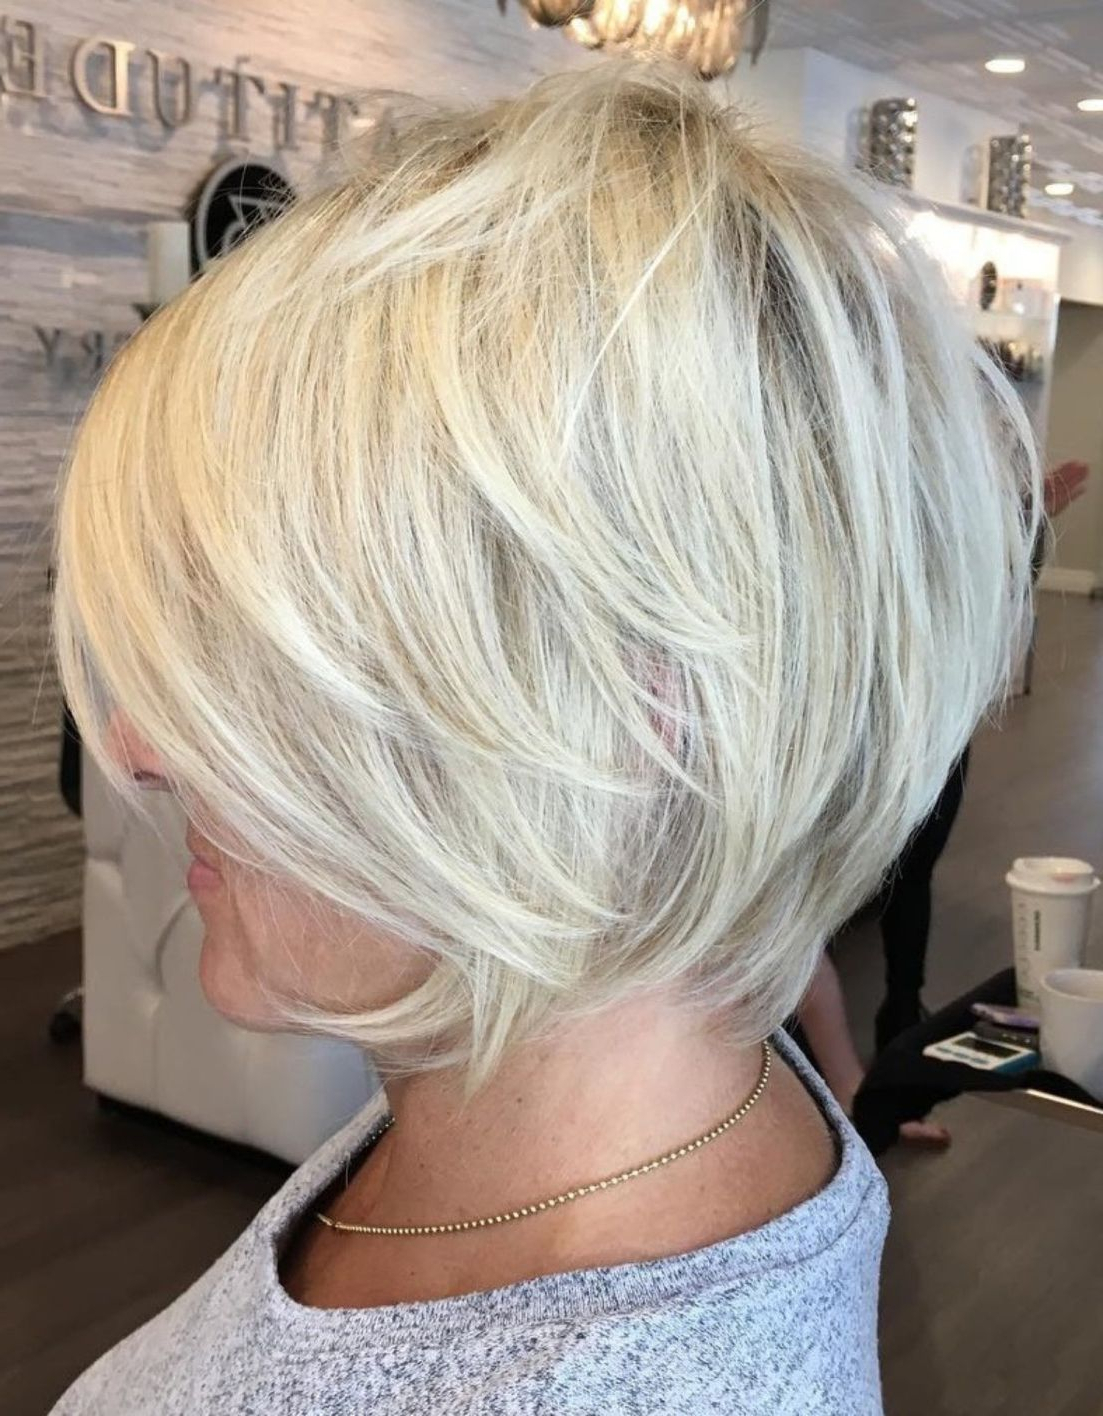 90 Classy And Simple Short Hairstyles For Women Over 50 In 2018 Inside Airy Gray Pixie Hairstyles With Lots Of Layers (View 6 of 20)